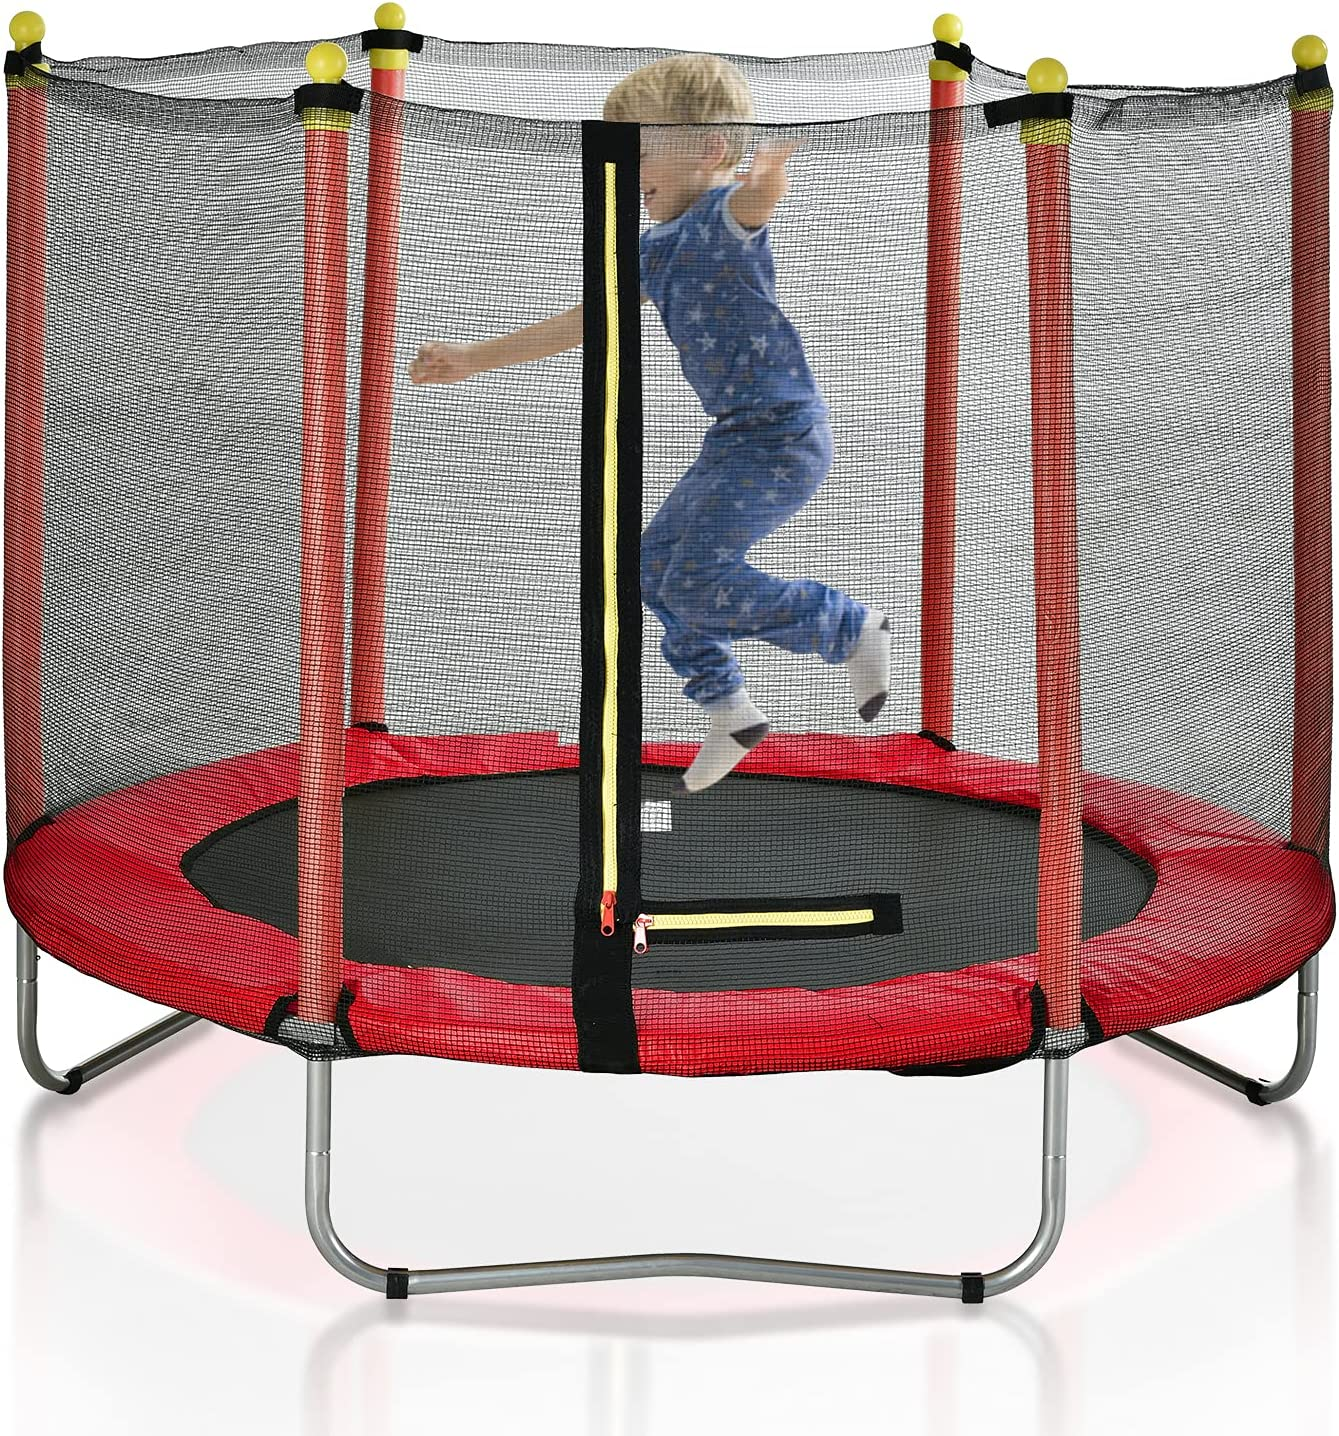 Directly managed store 60-inch Trampoline for Children with 2021 model Enclos Kids